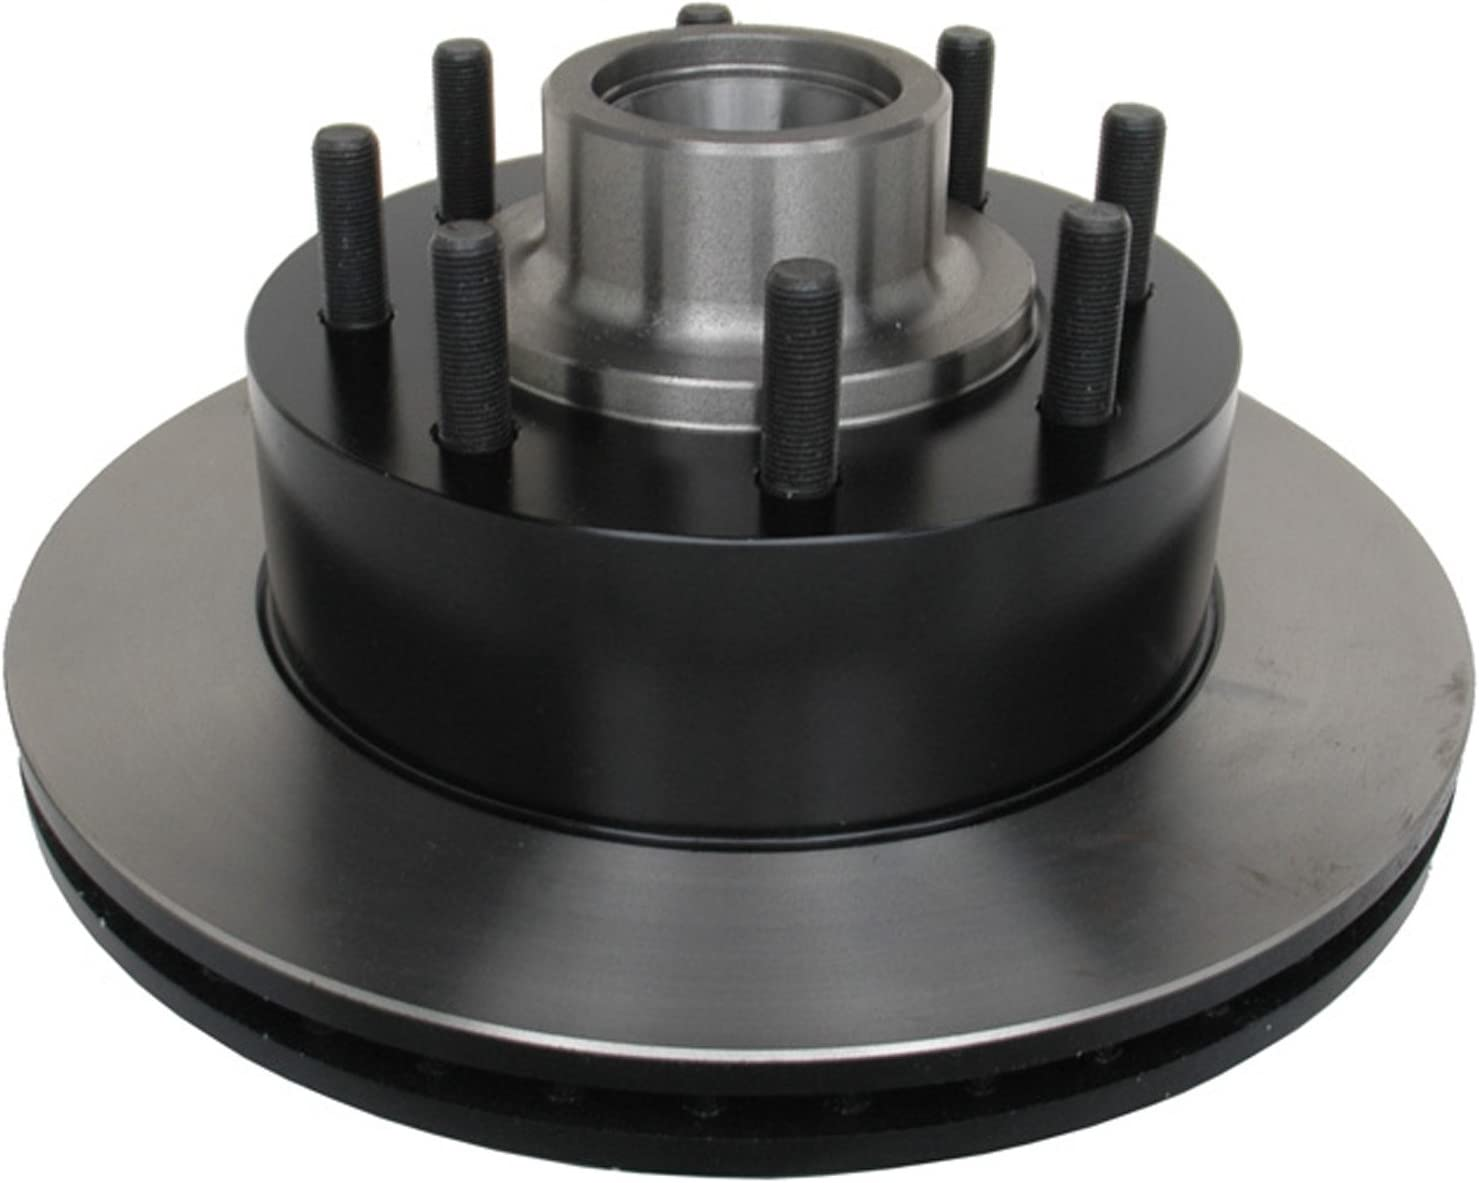 B000C9EFYQ ACDelco 18A722 Professional Front Disc Brake Rotor and Hub Assembly 71-HrtyjwTL.SL1500_